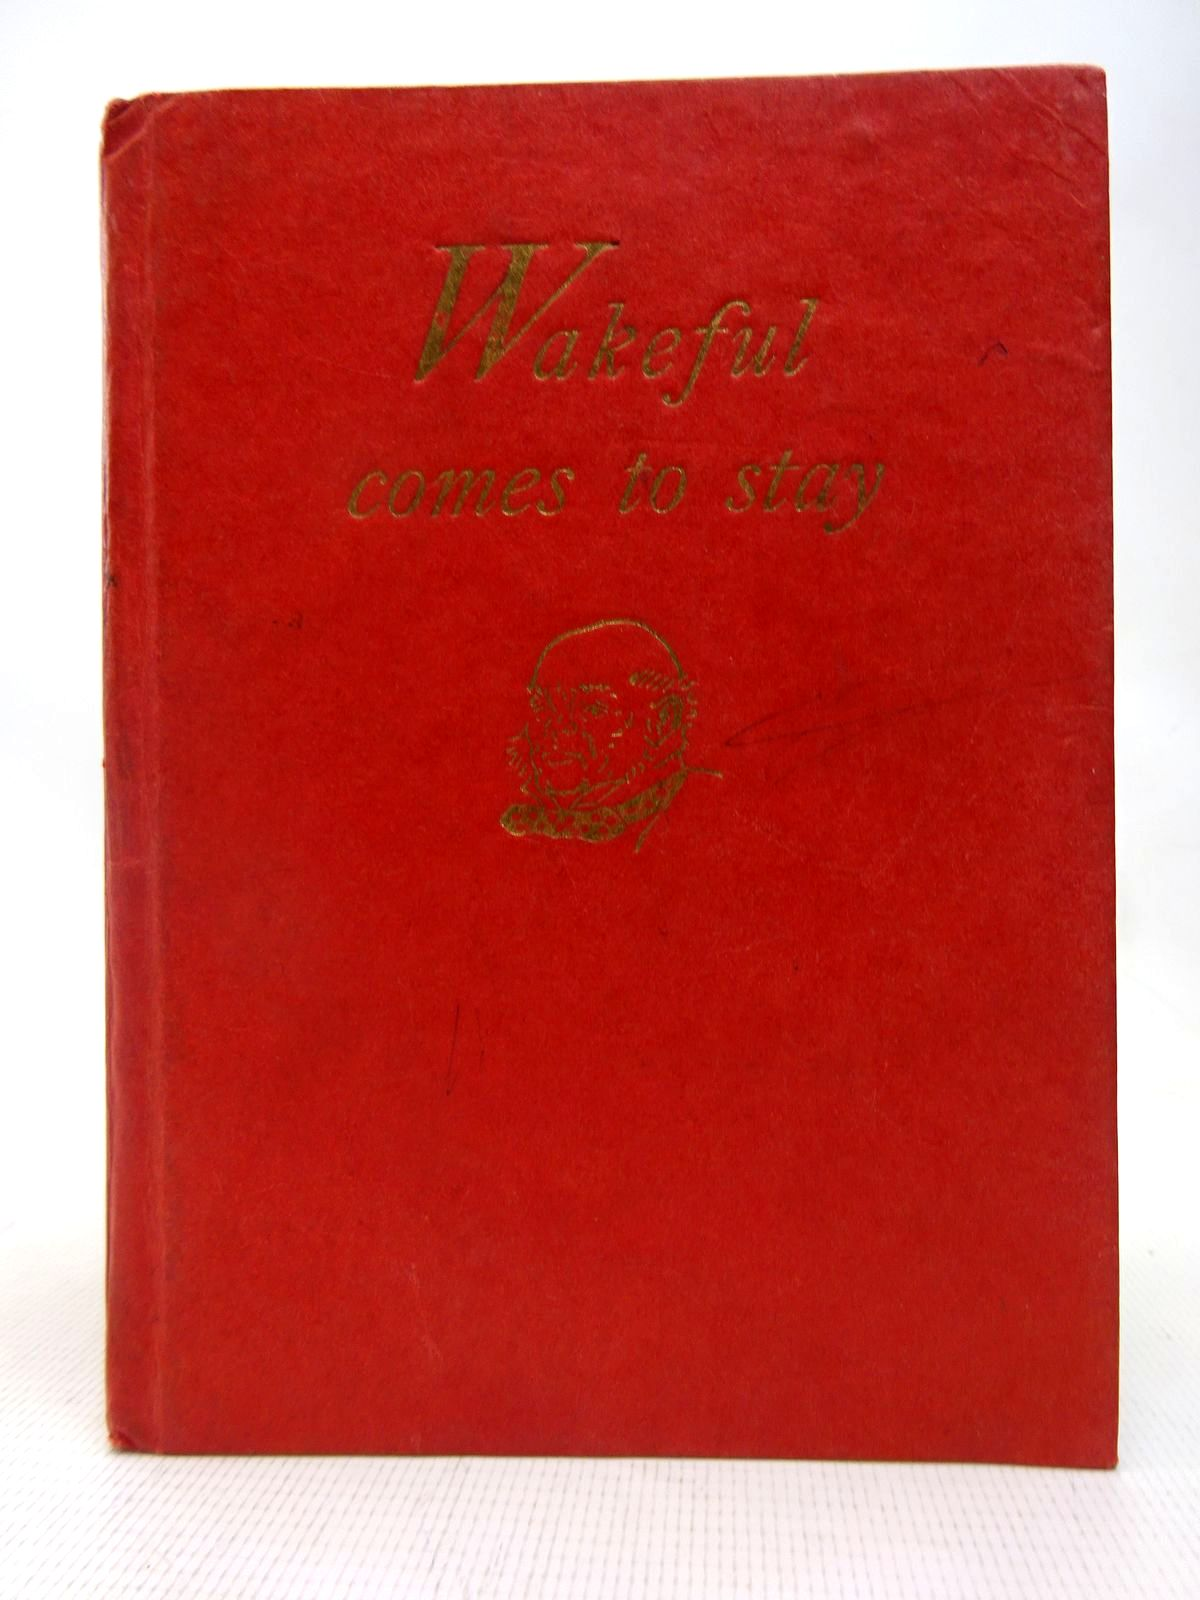 Photo of WAKEFUL COMES TO STAY written by Hartman, Robert illustrated by Hartman, Robert published by Arthur Barker Ltd. (STOCK CODE: 1816521)  for sale by Stella & Rose's Books